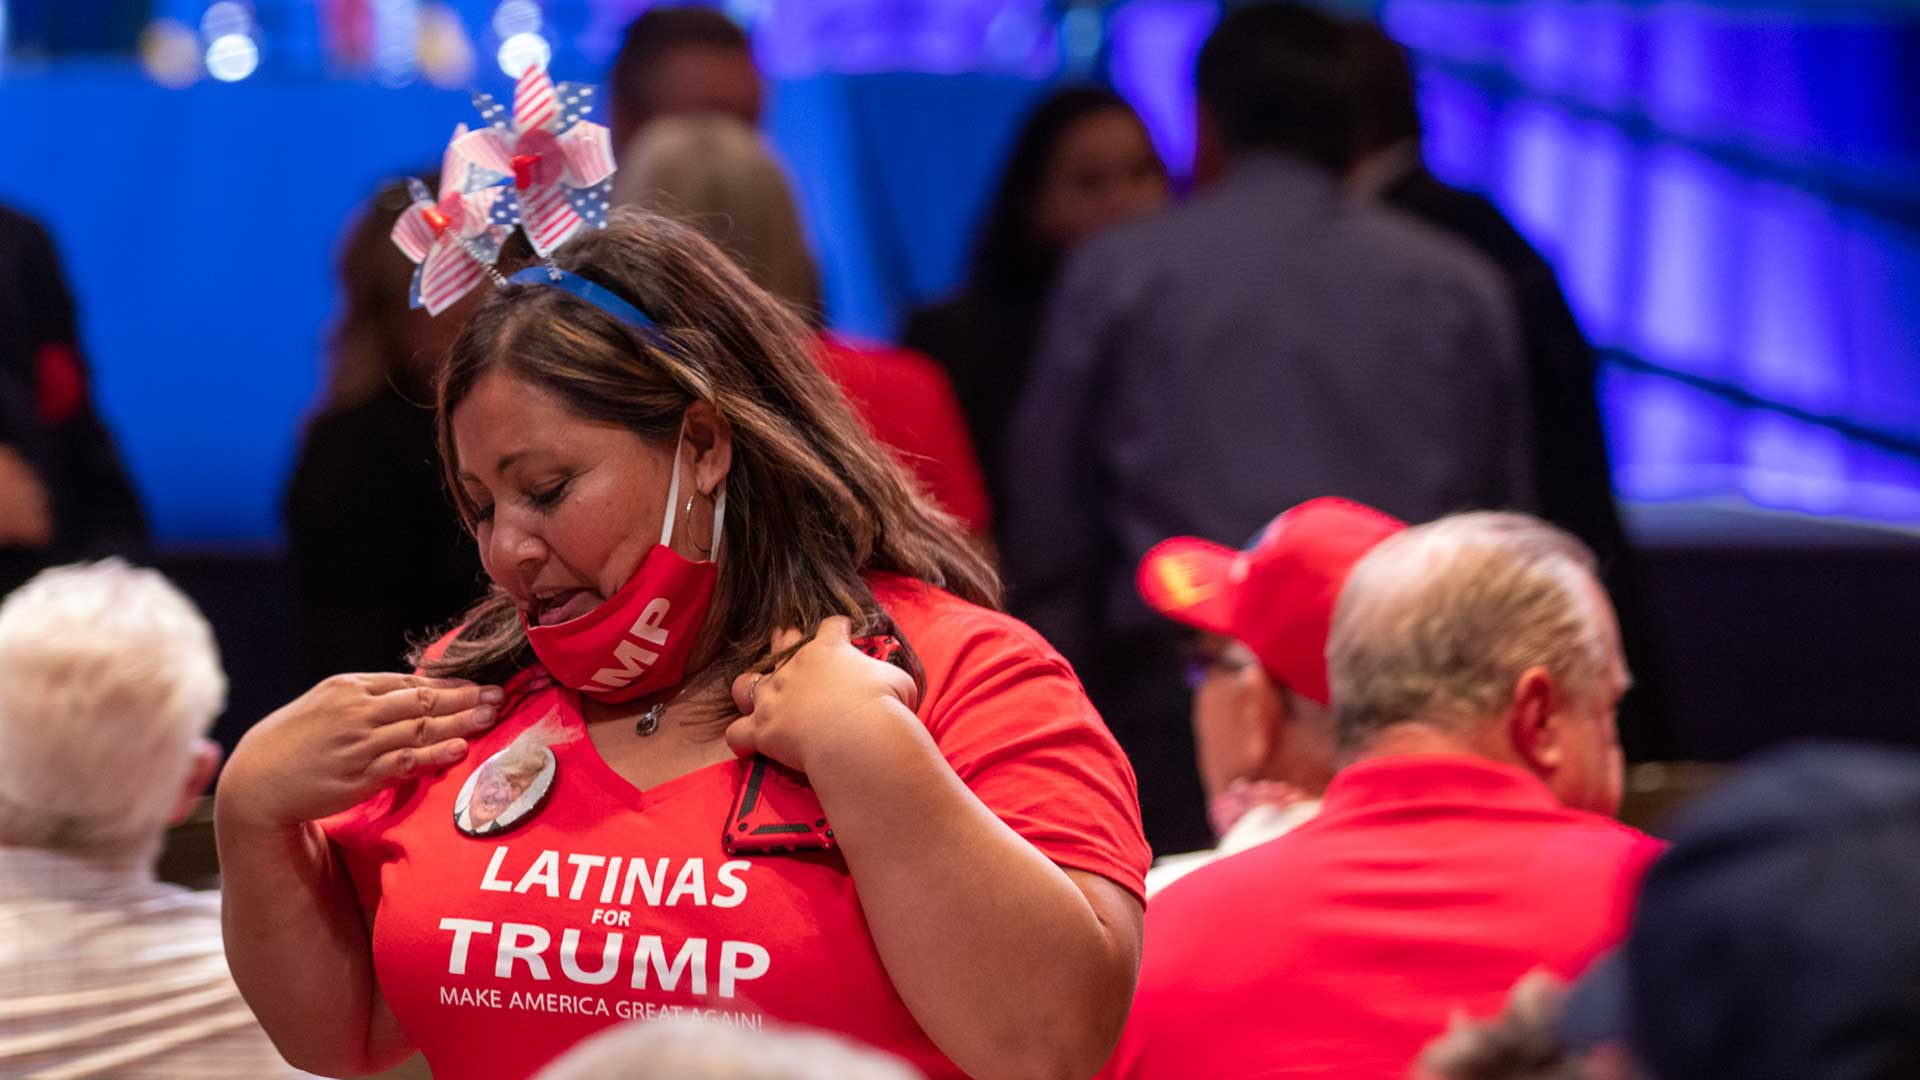 latinas for trump rally